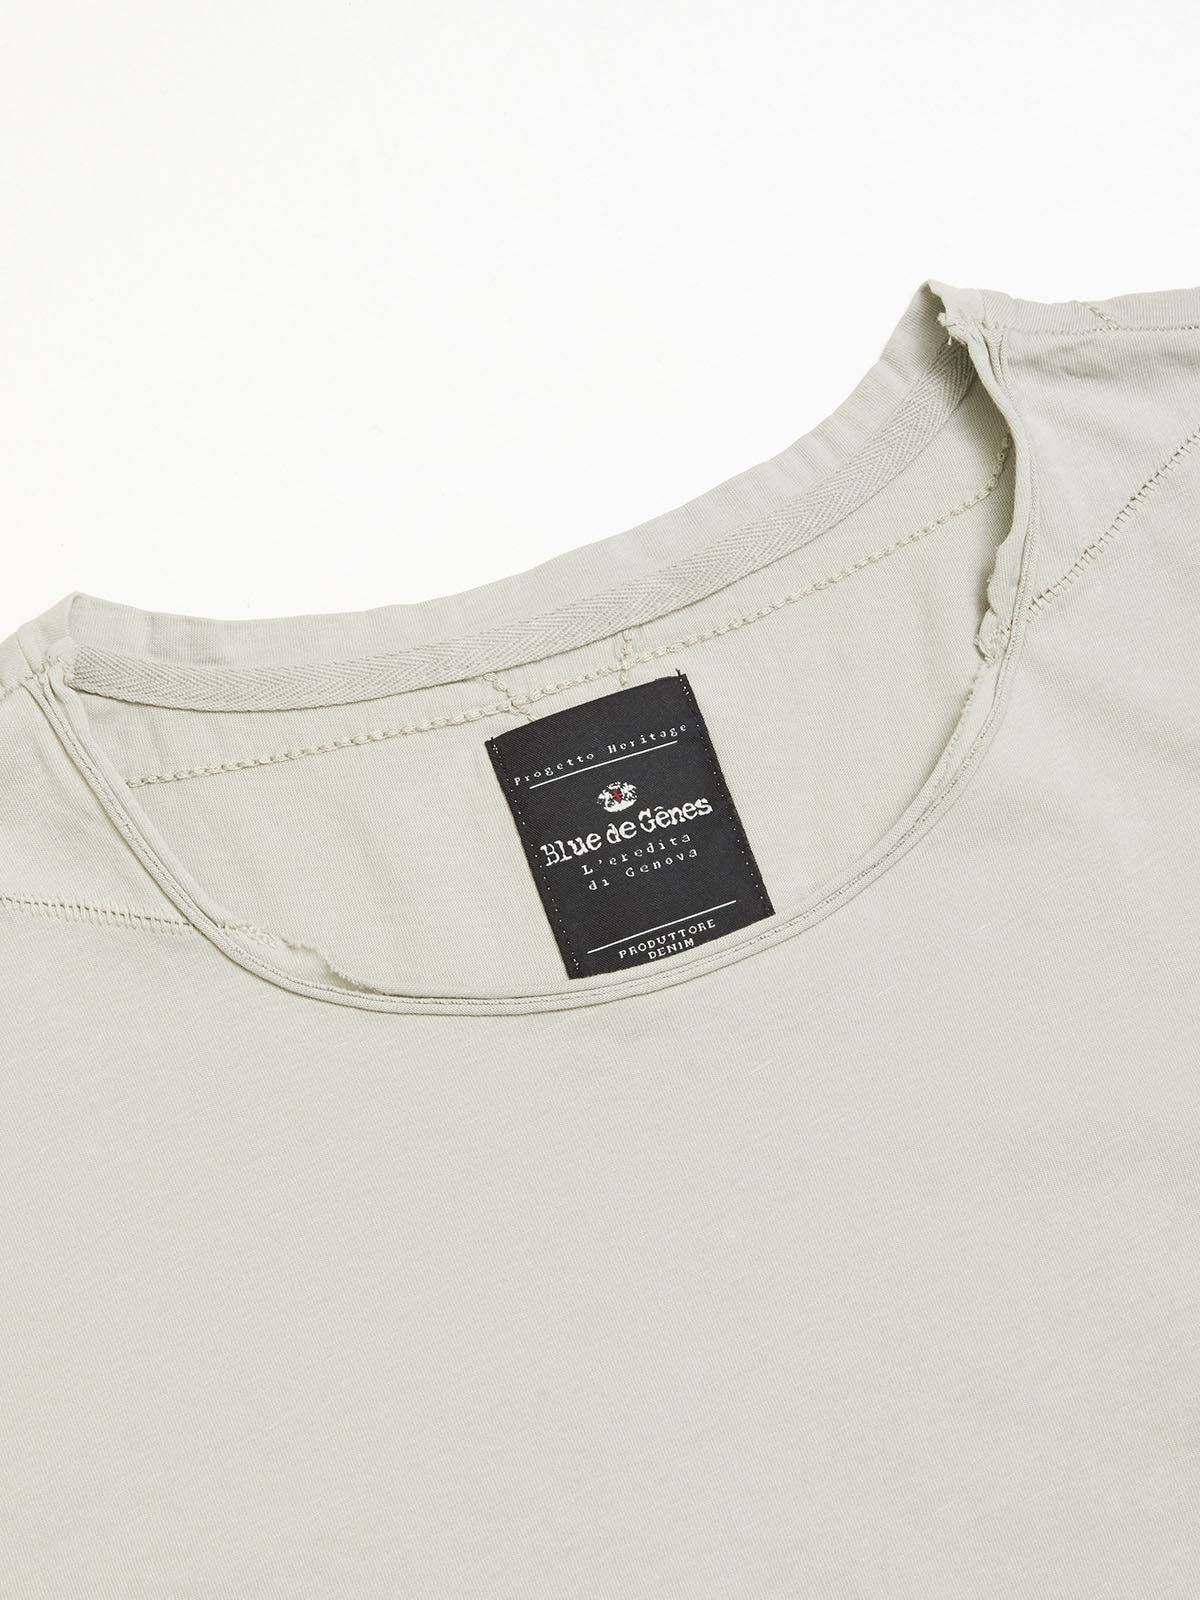 Sagi Shortsleeve T-Shirt Light Desert